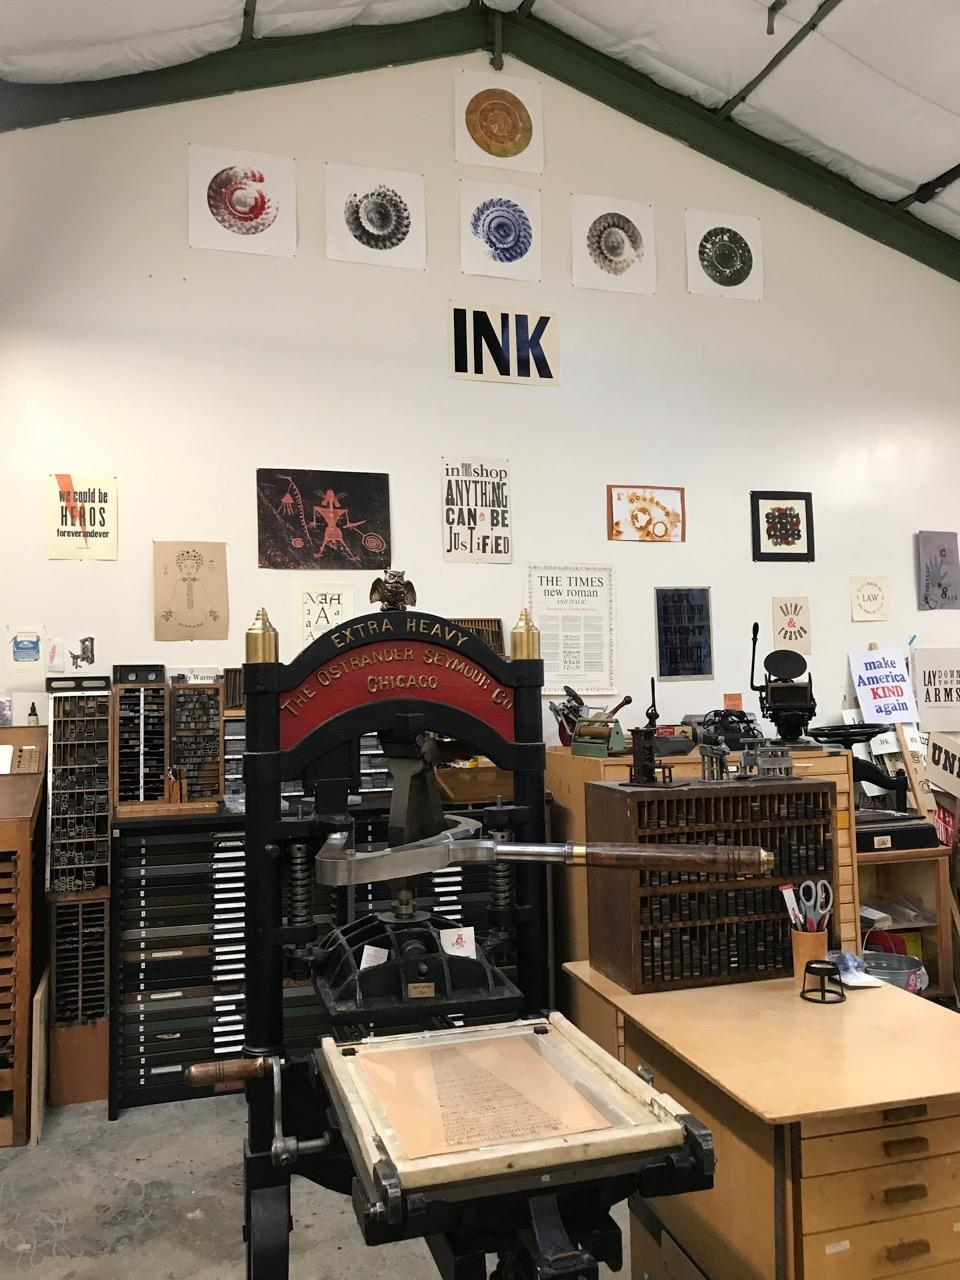 Note they also have a nice bookpress